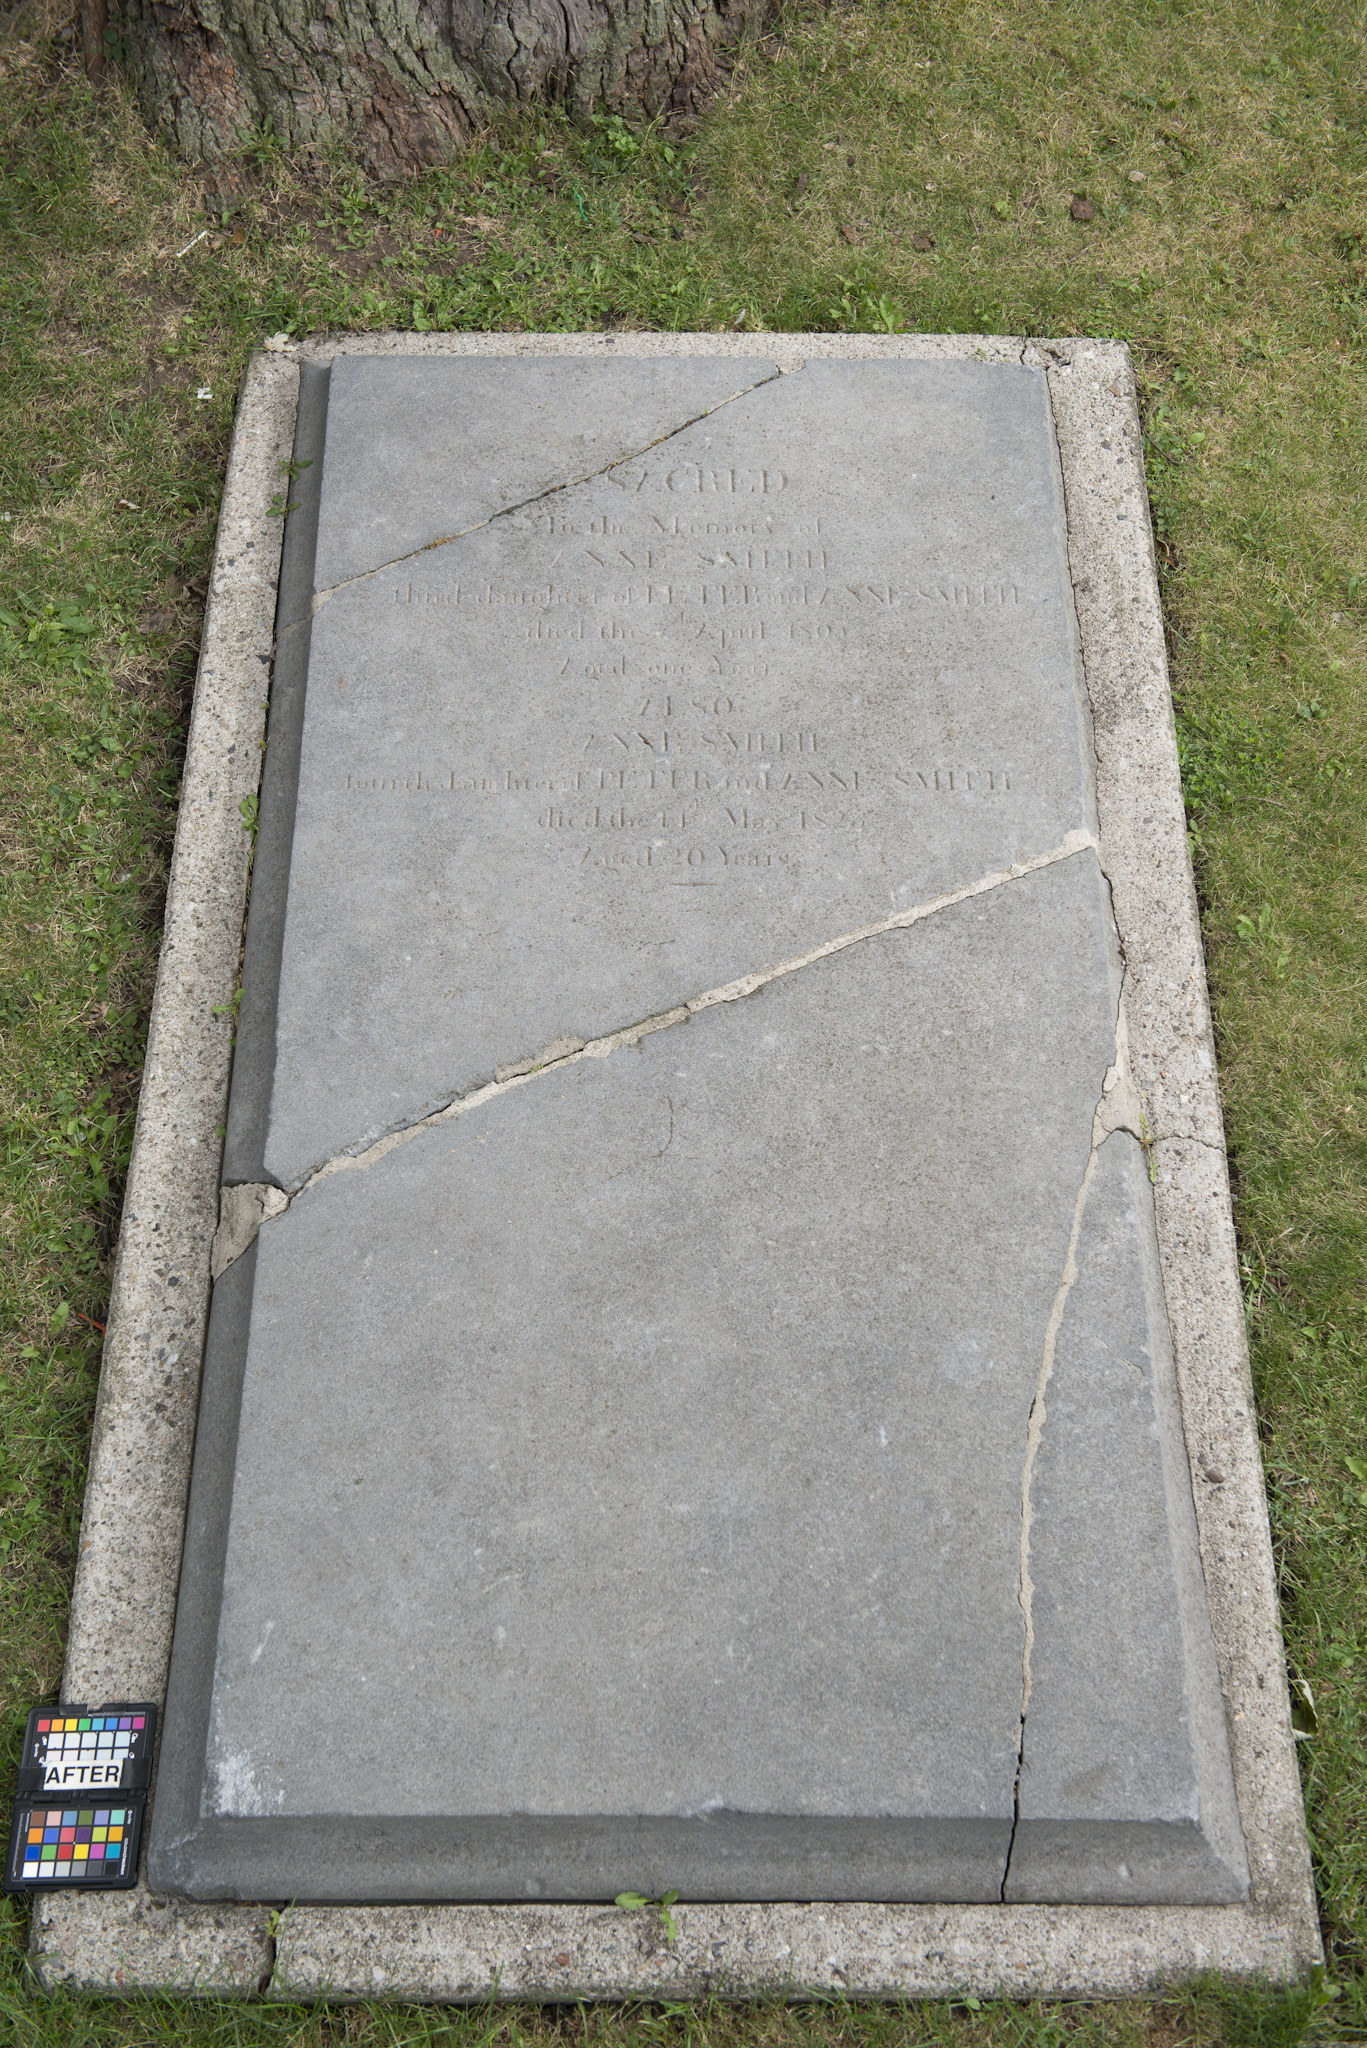 Marker for Anne Smith 1802-03 and her sister Ann(e) Smith 1805-1825 (Alex Gabov)